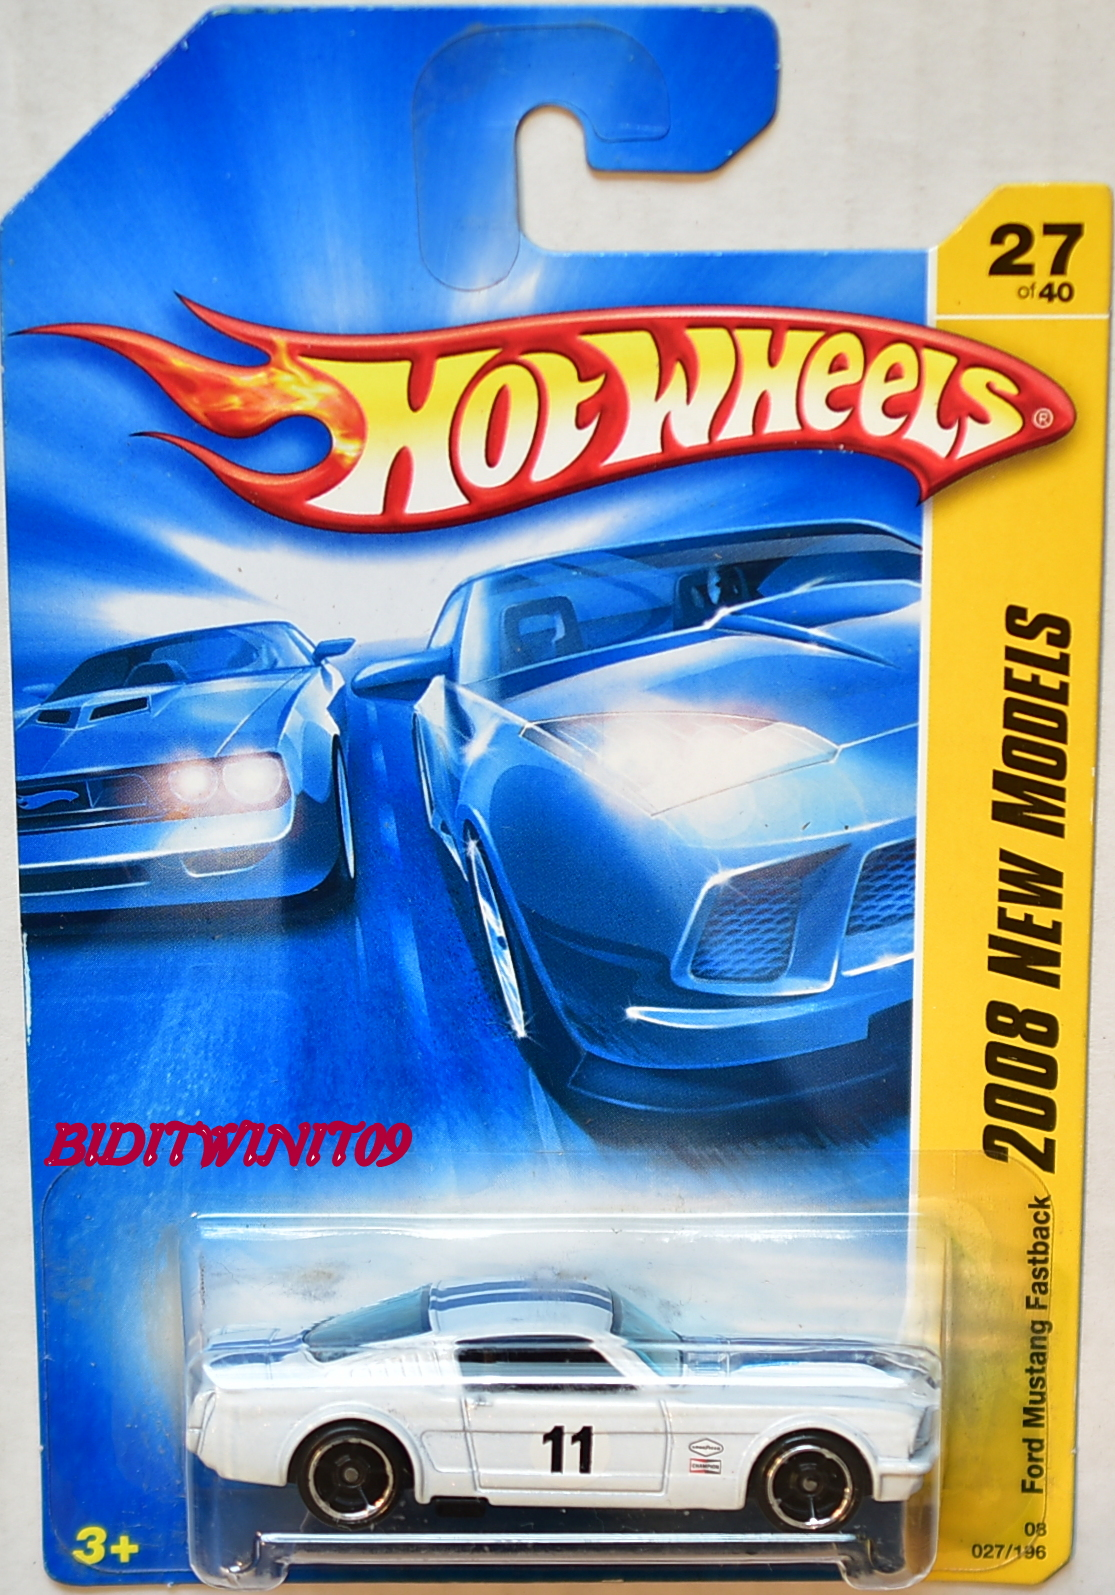 HOT WHEELS 2008 NEW MODELS FORD MUSTANG FASTBACK #27/40 WHITE